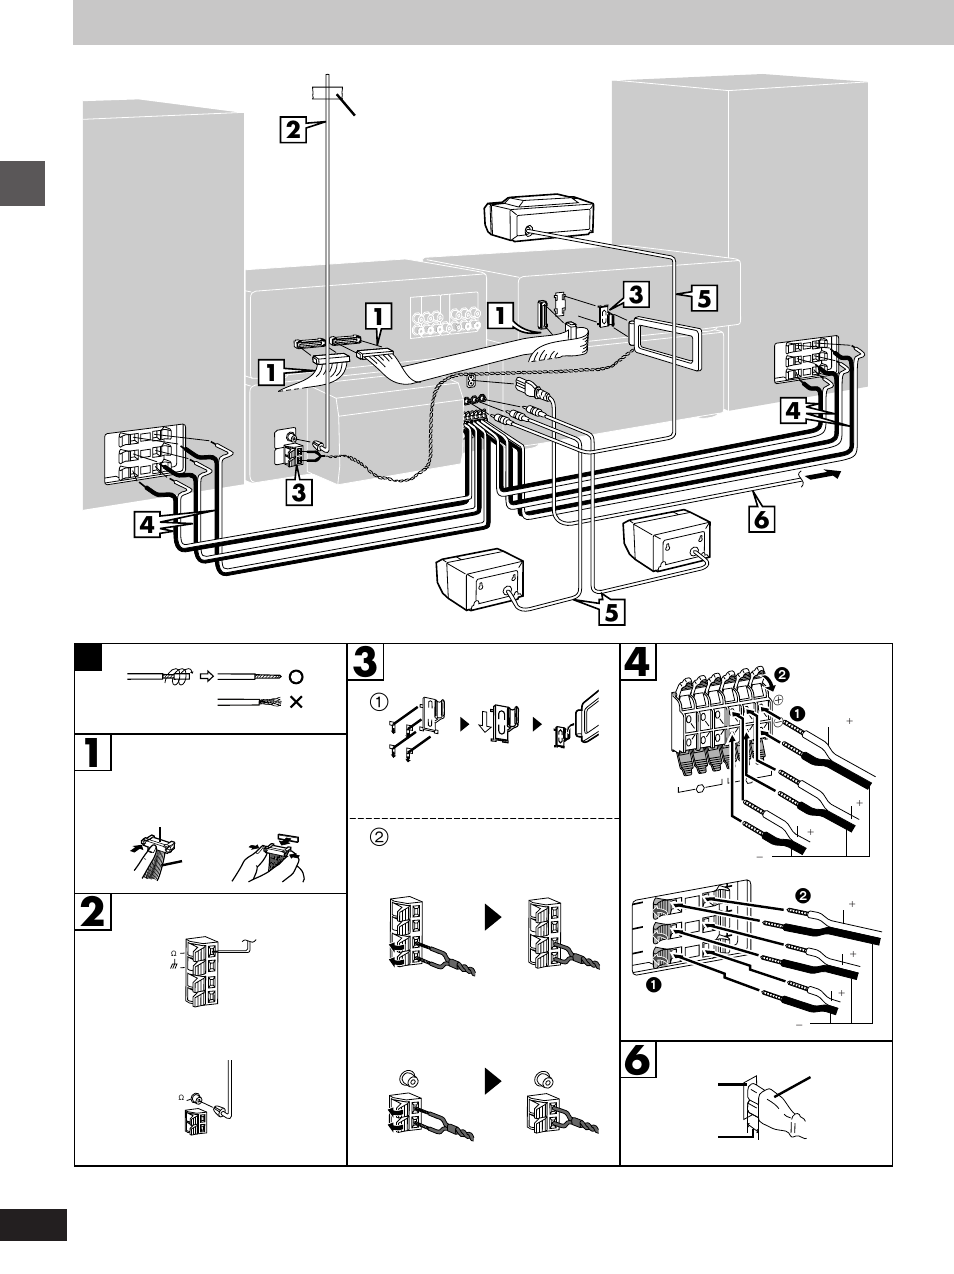 Basic connections | Technics SC-EH560 User Manual | Page 6